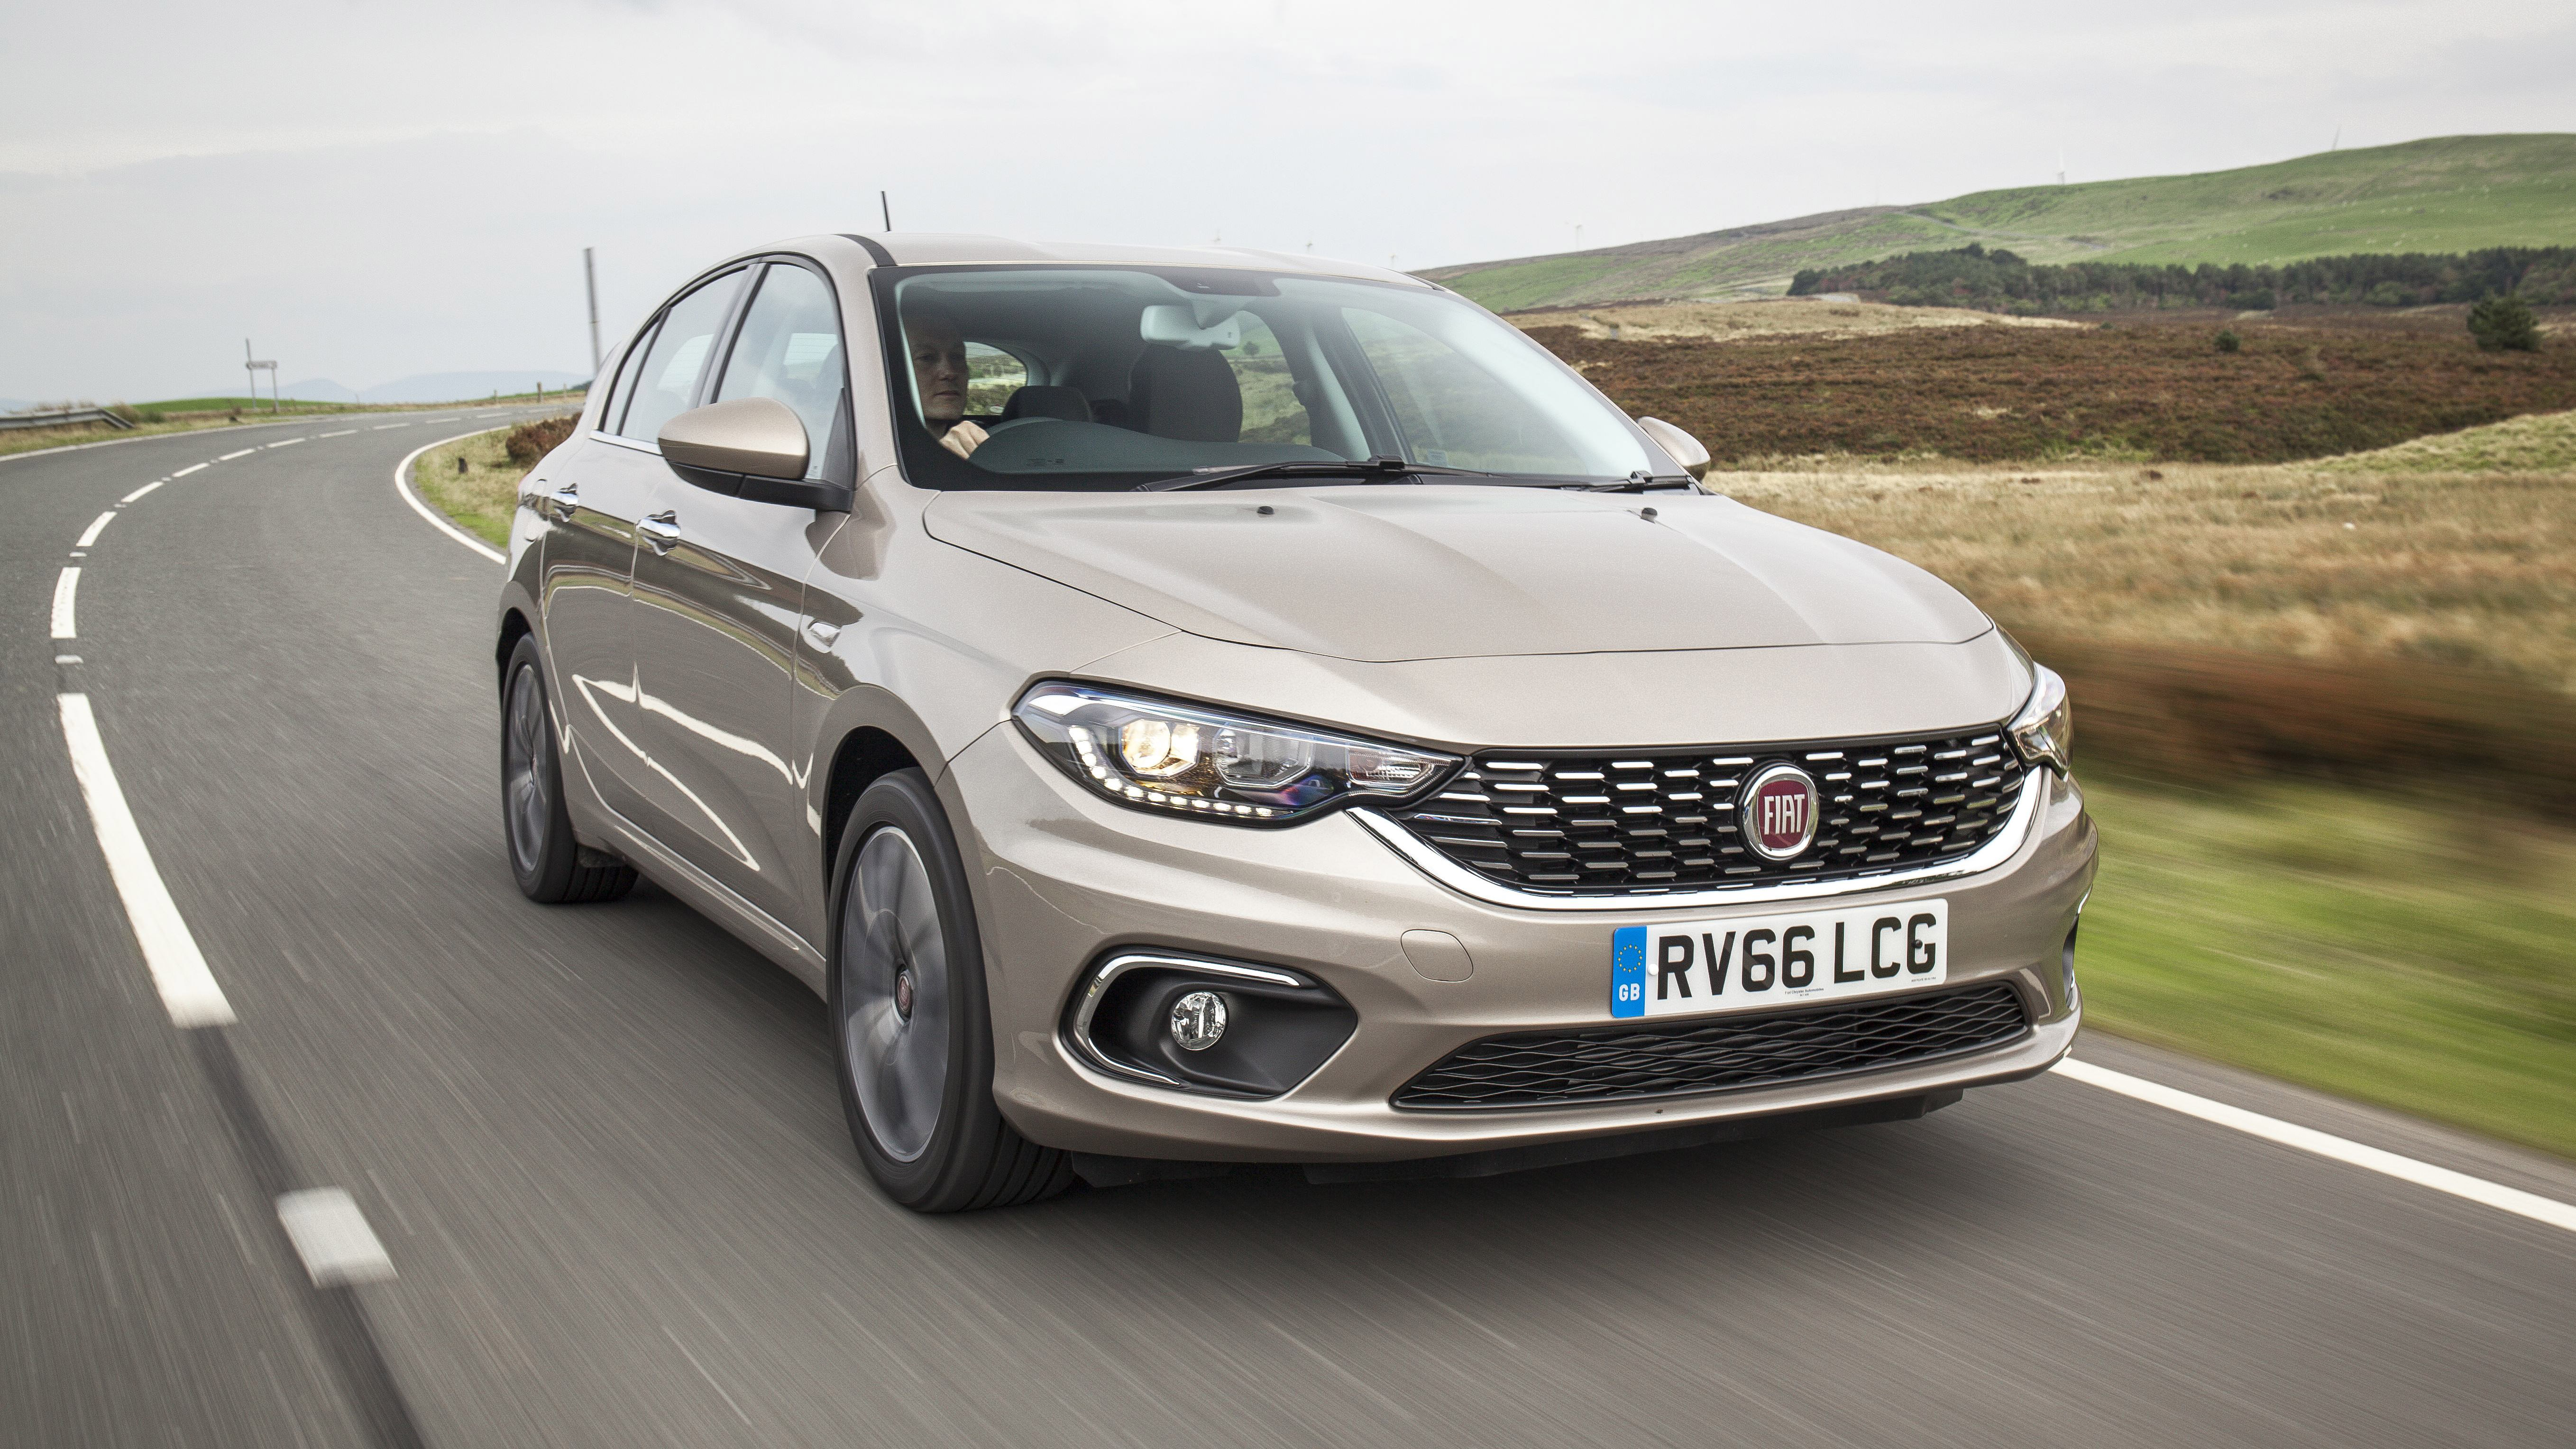 2017 Fiat Tipo front quarter